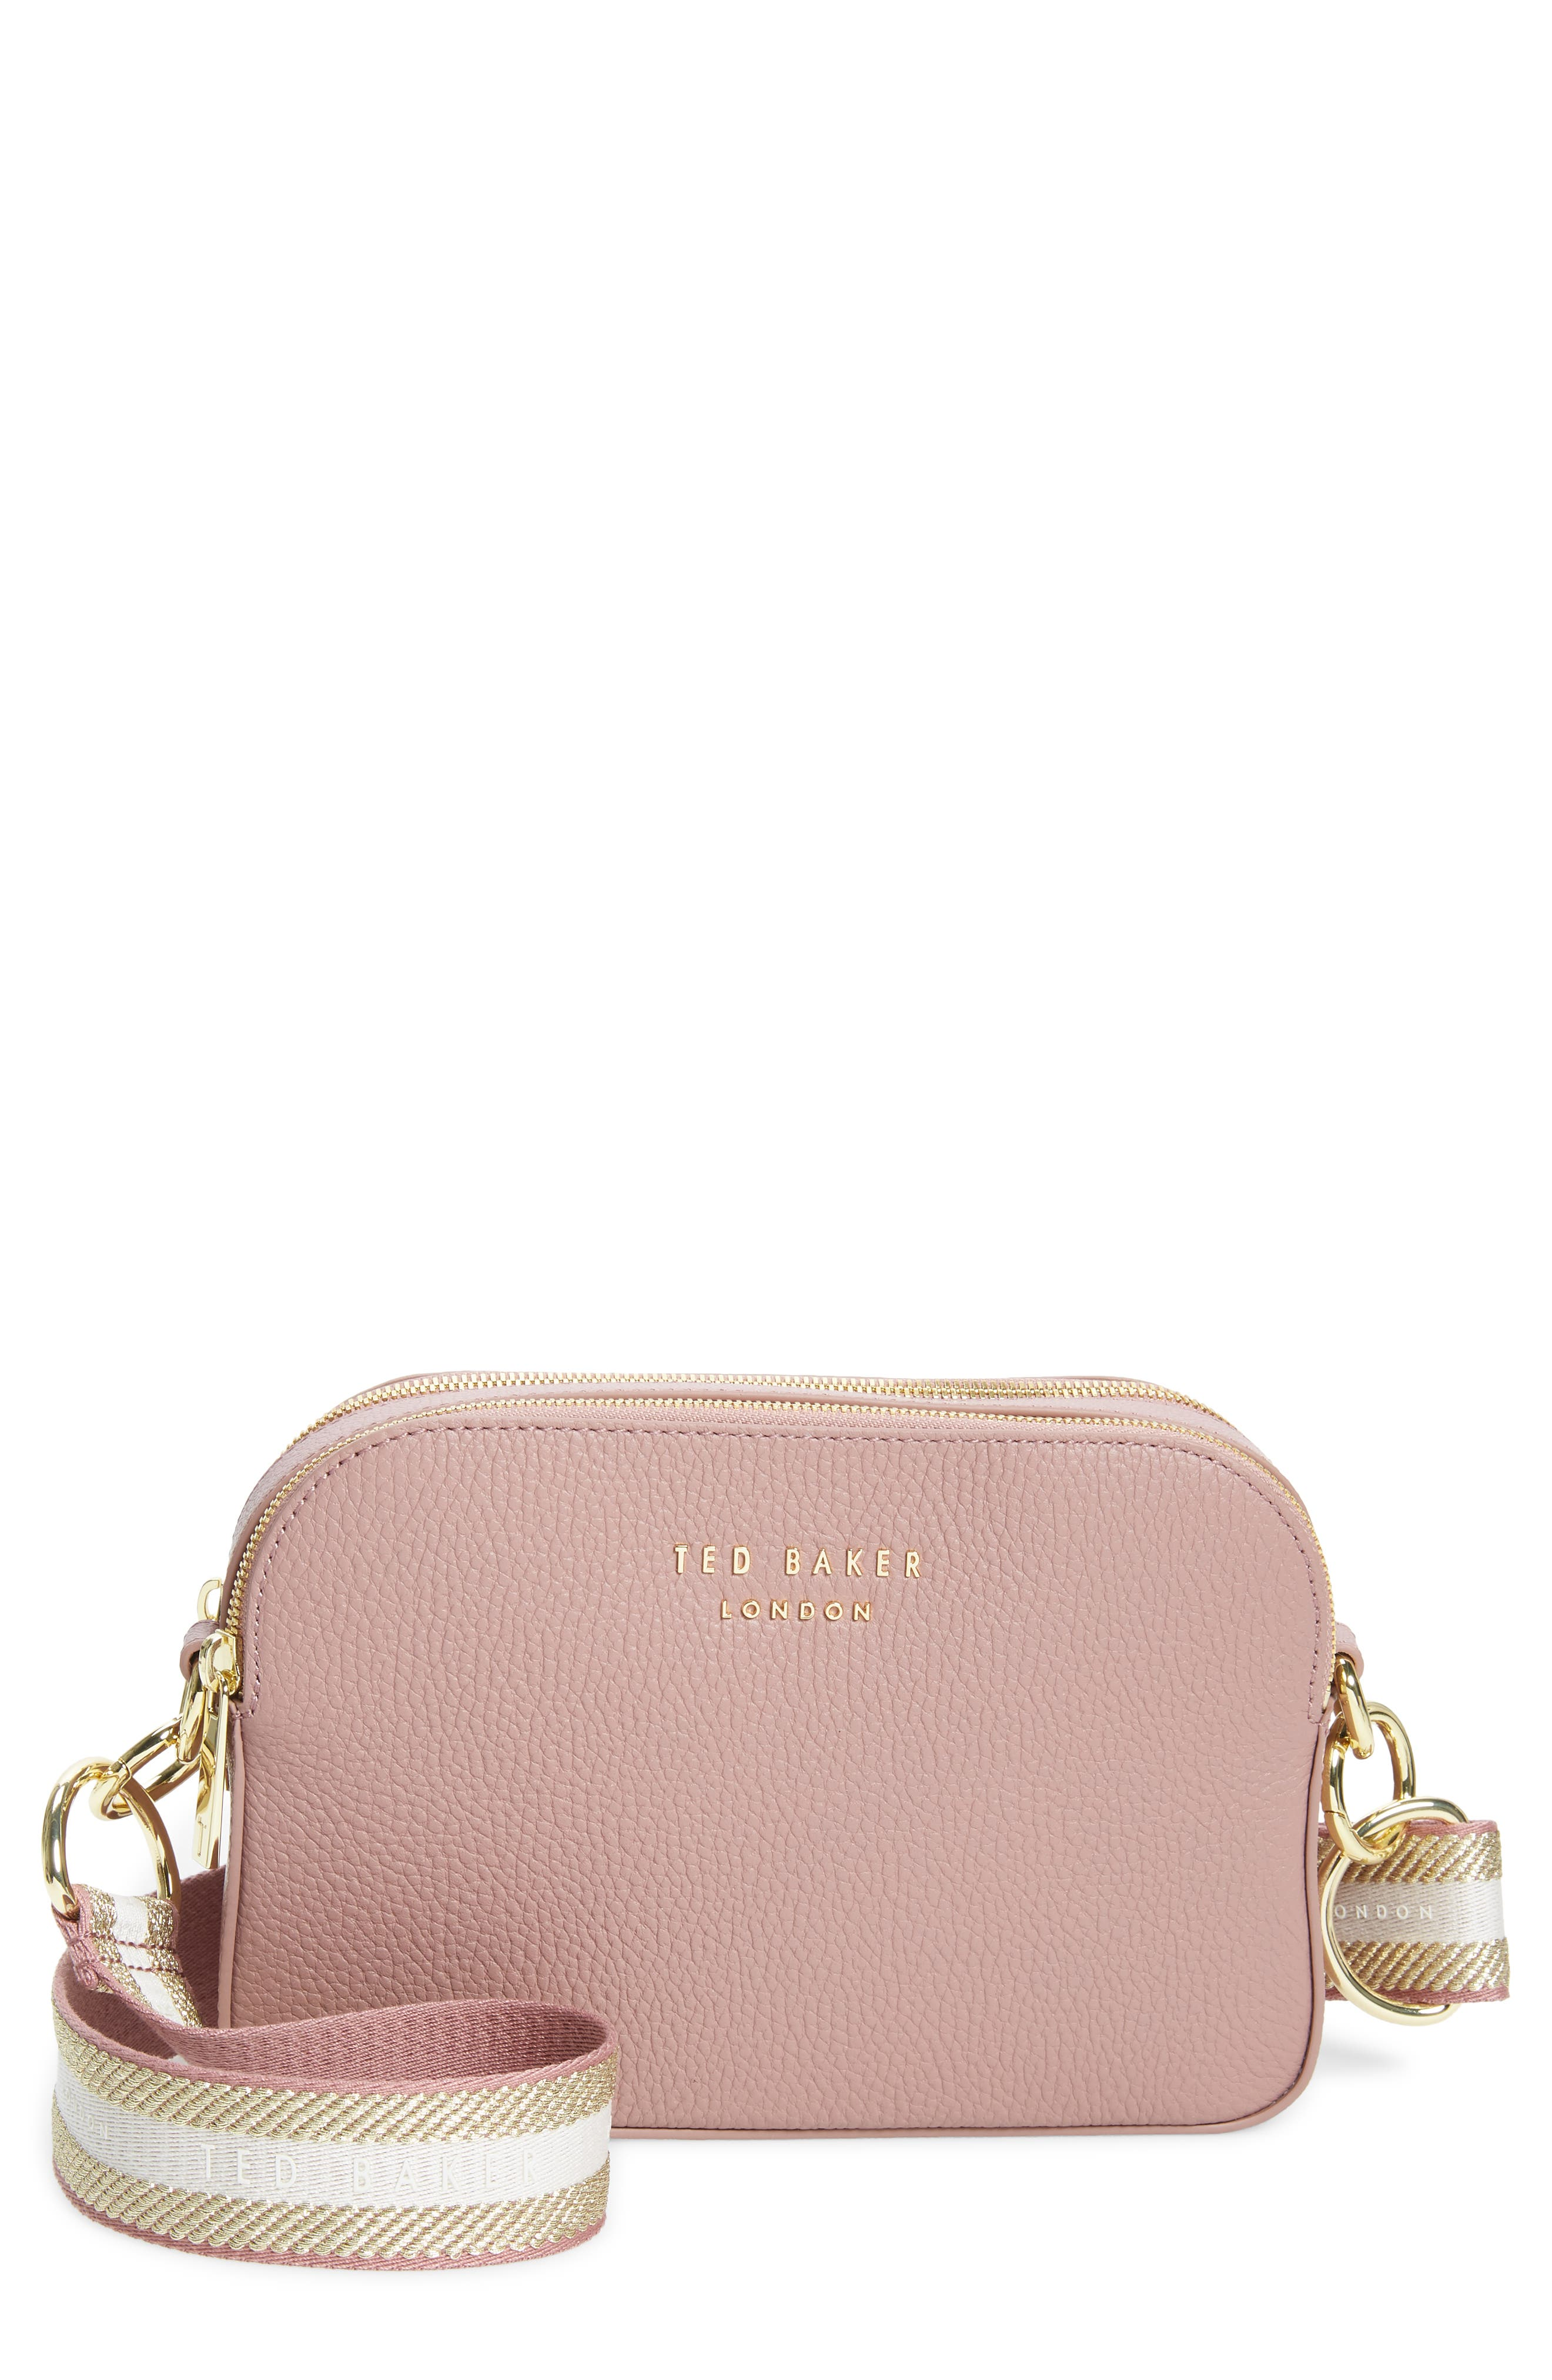 This grainy leather bag lets you mix it up thanks to its two straps, one a traditional leather one and the other a bold webbed strap with stripes and logos. Style Name: Ted Baker London Amerrah Branded Strap Leather Crossbody Bag. Style Number: 5997137. Available in stores.